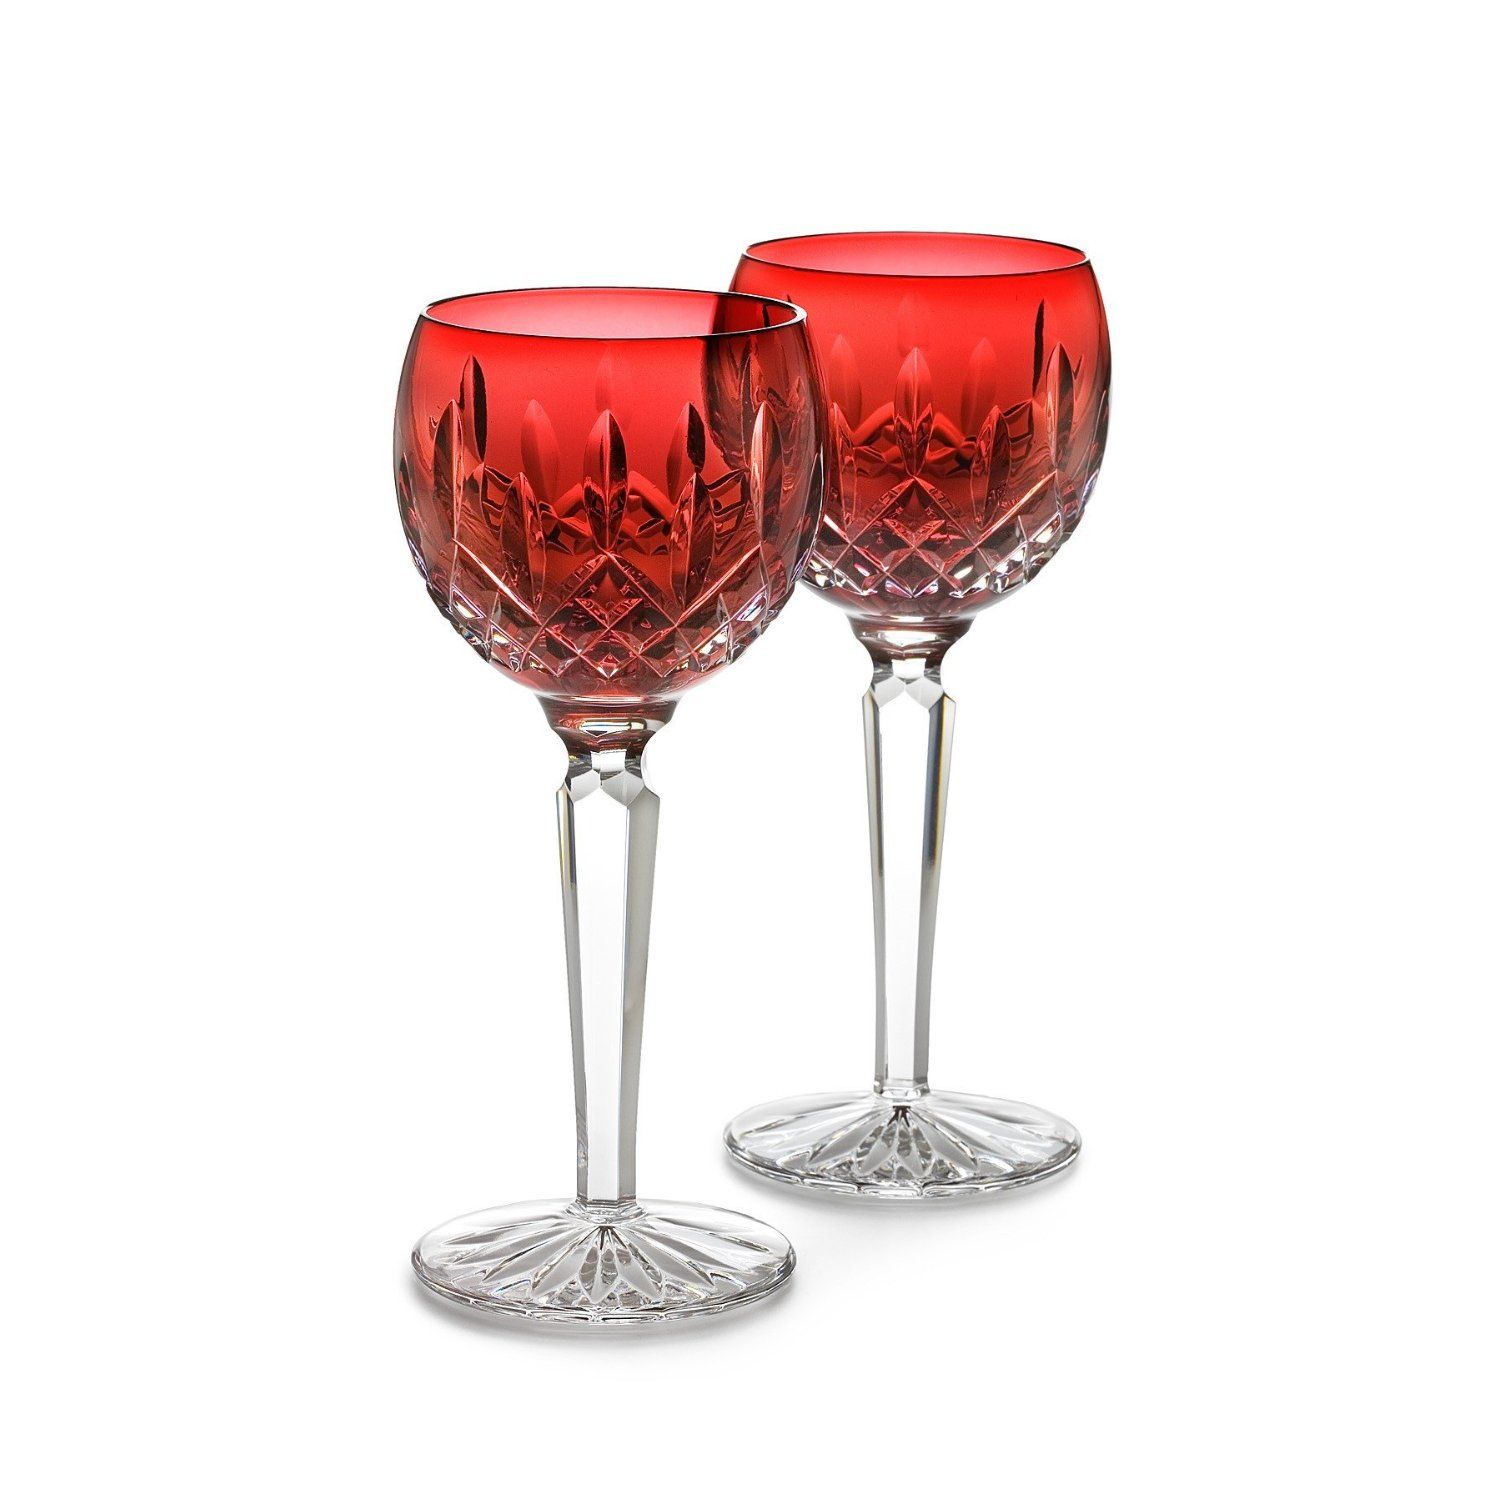 Waterford Crystal Christmas Goblets Waterford Crystal Lismore Crystal Stemware Crystal Glassware